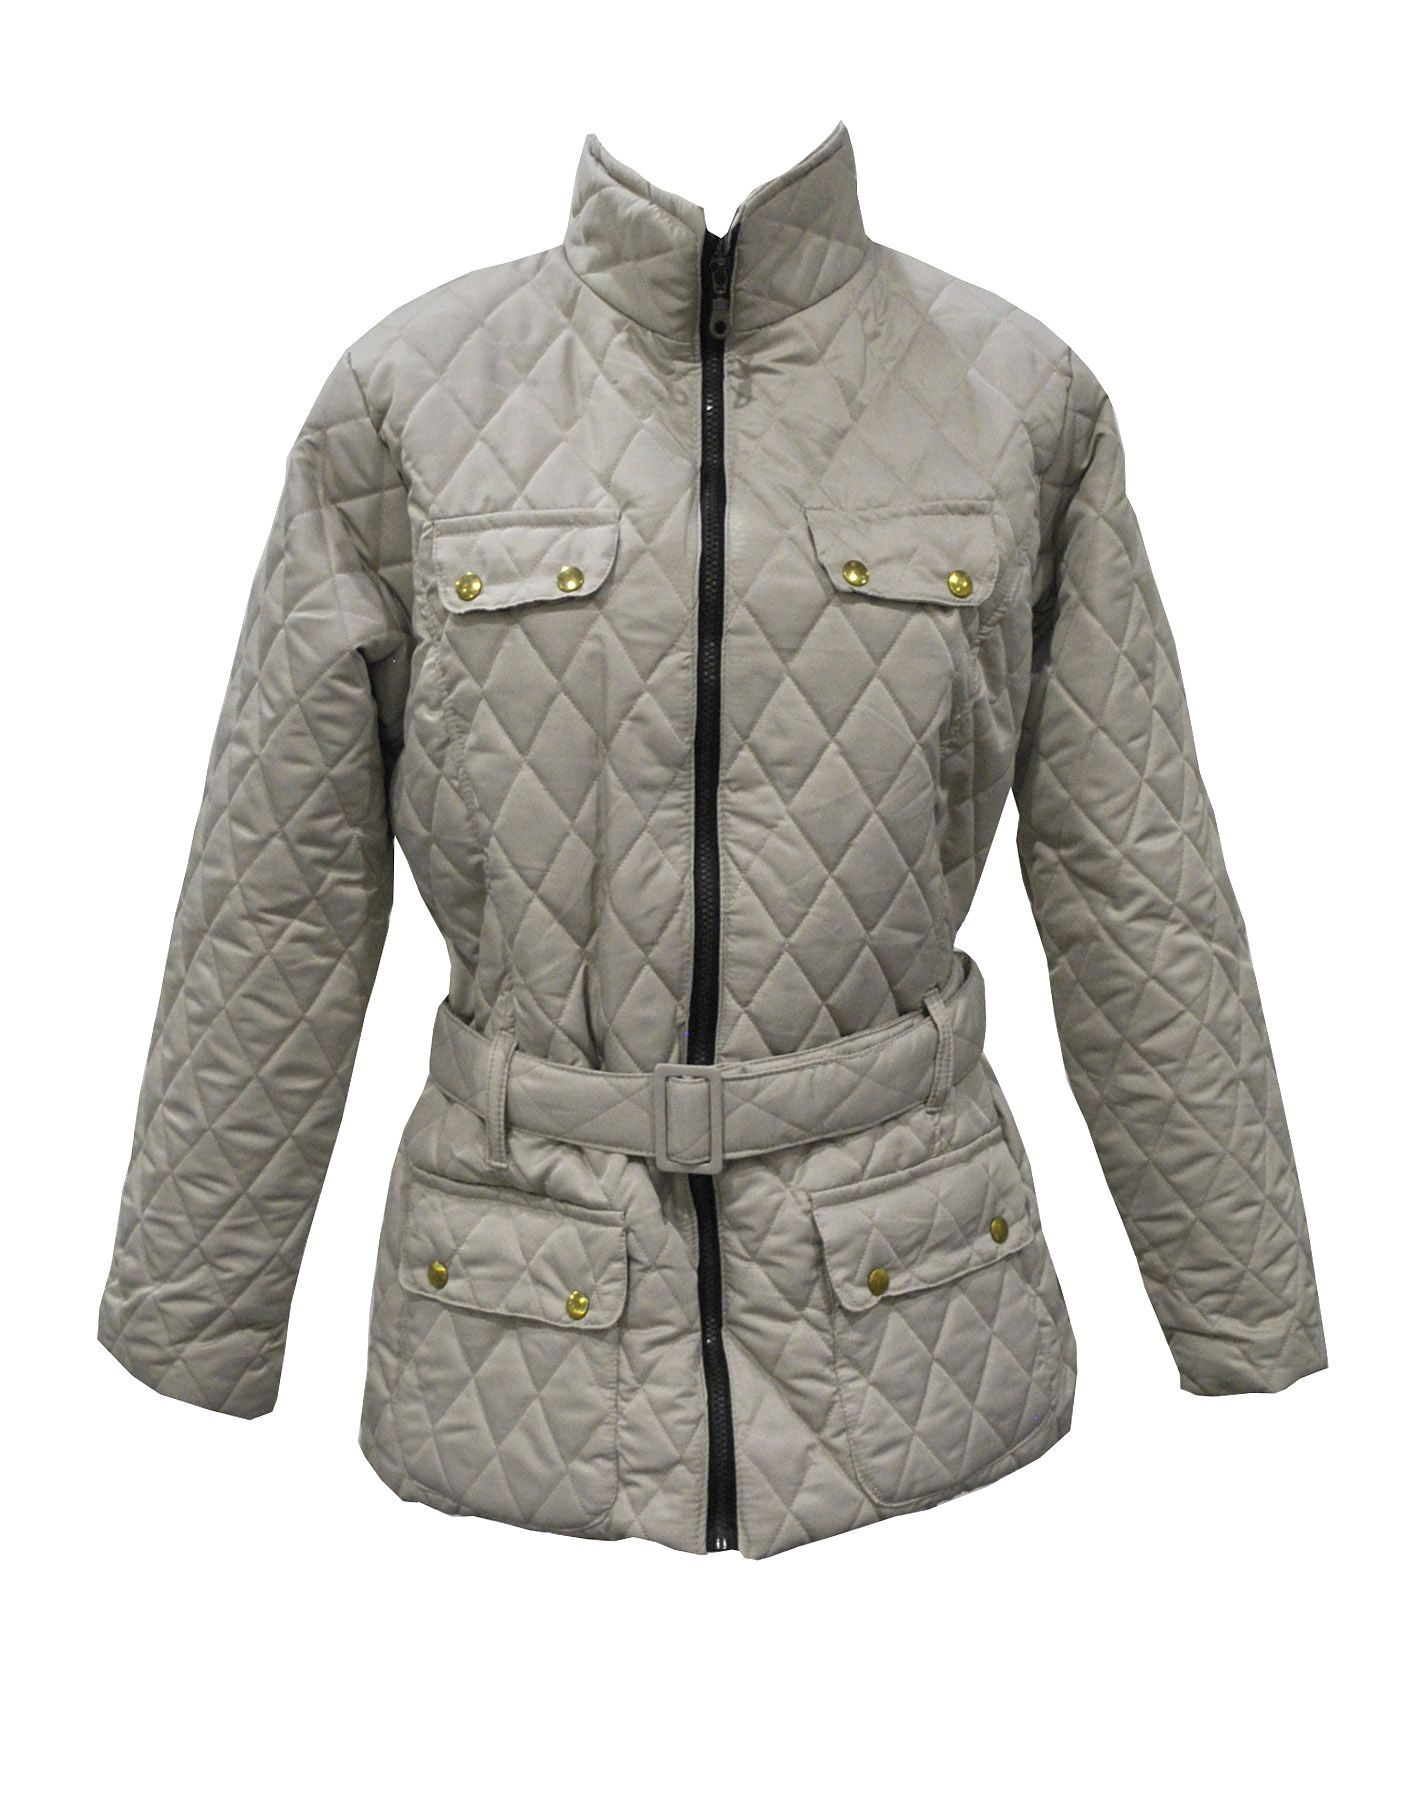 The key to styling your plus size quilted jacket without looking like a marshmallow is to keep the proportions balanced. Pair your puffer with skinny pants, a short, slim skirt or play up the sporty vibe by pairing it with jeans and sneakers.